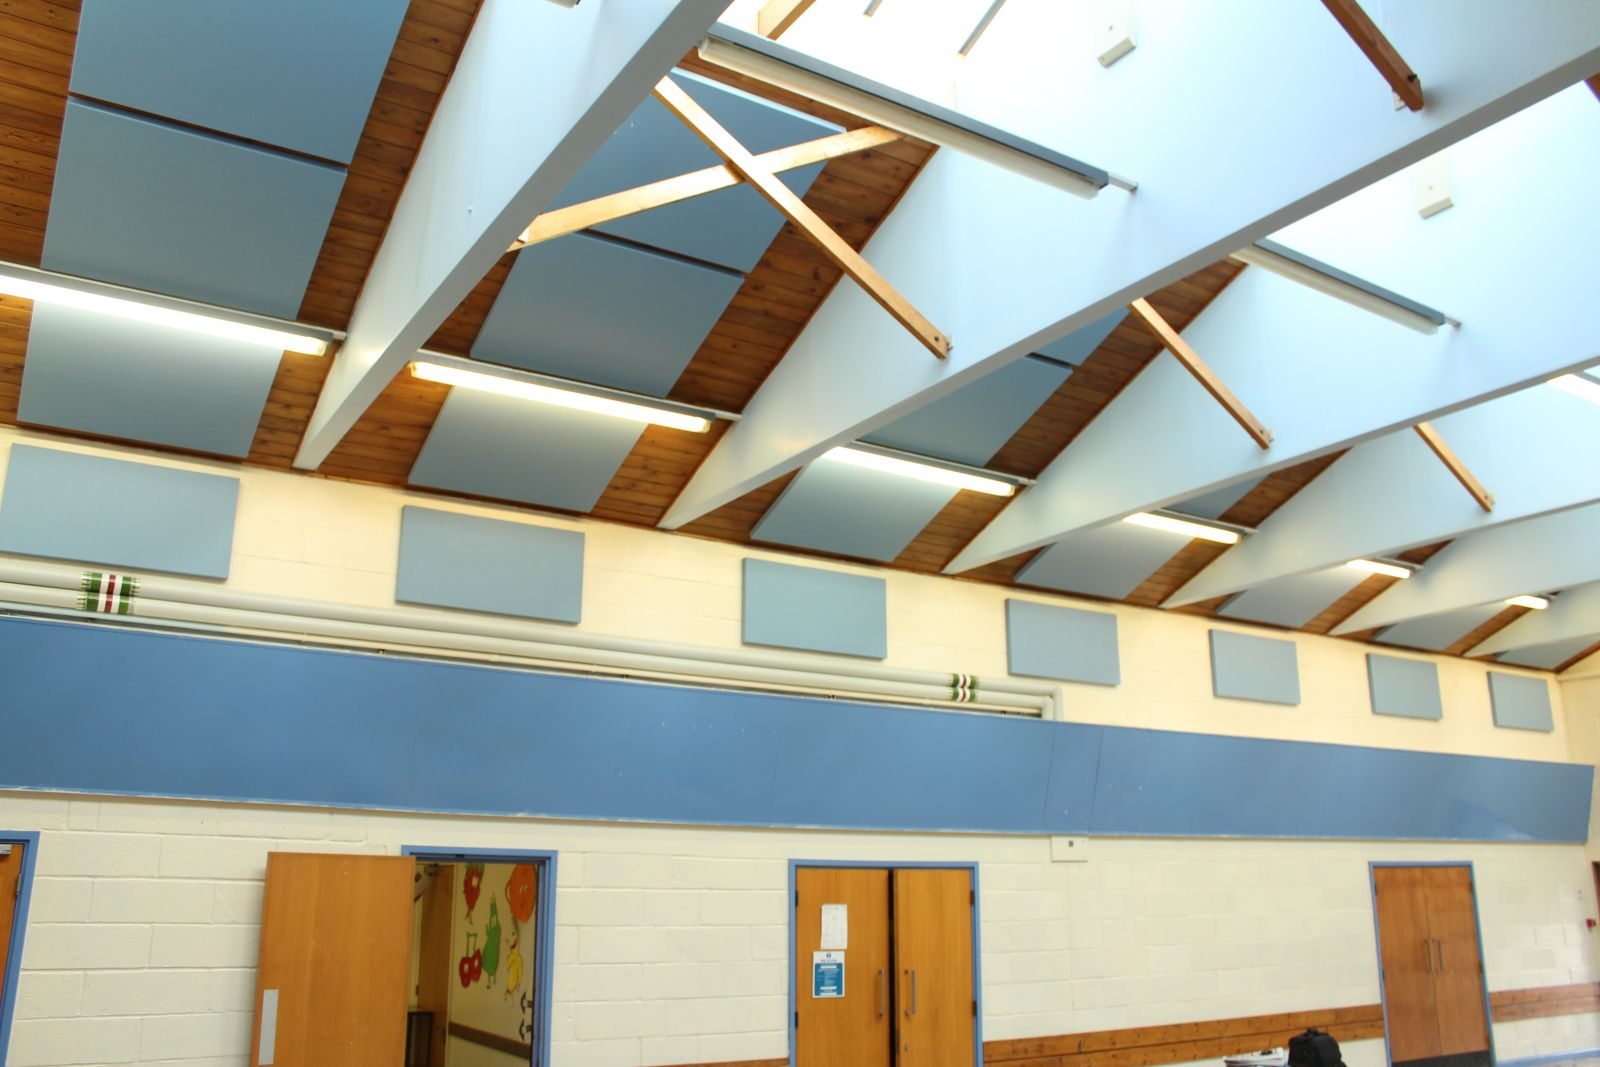 Sonata Aurio acoustic Panels installed onto walls and ceiling